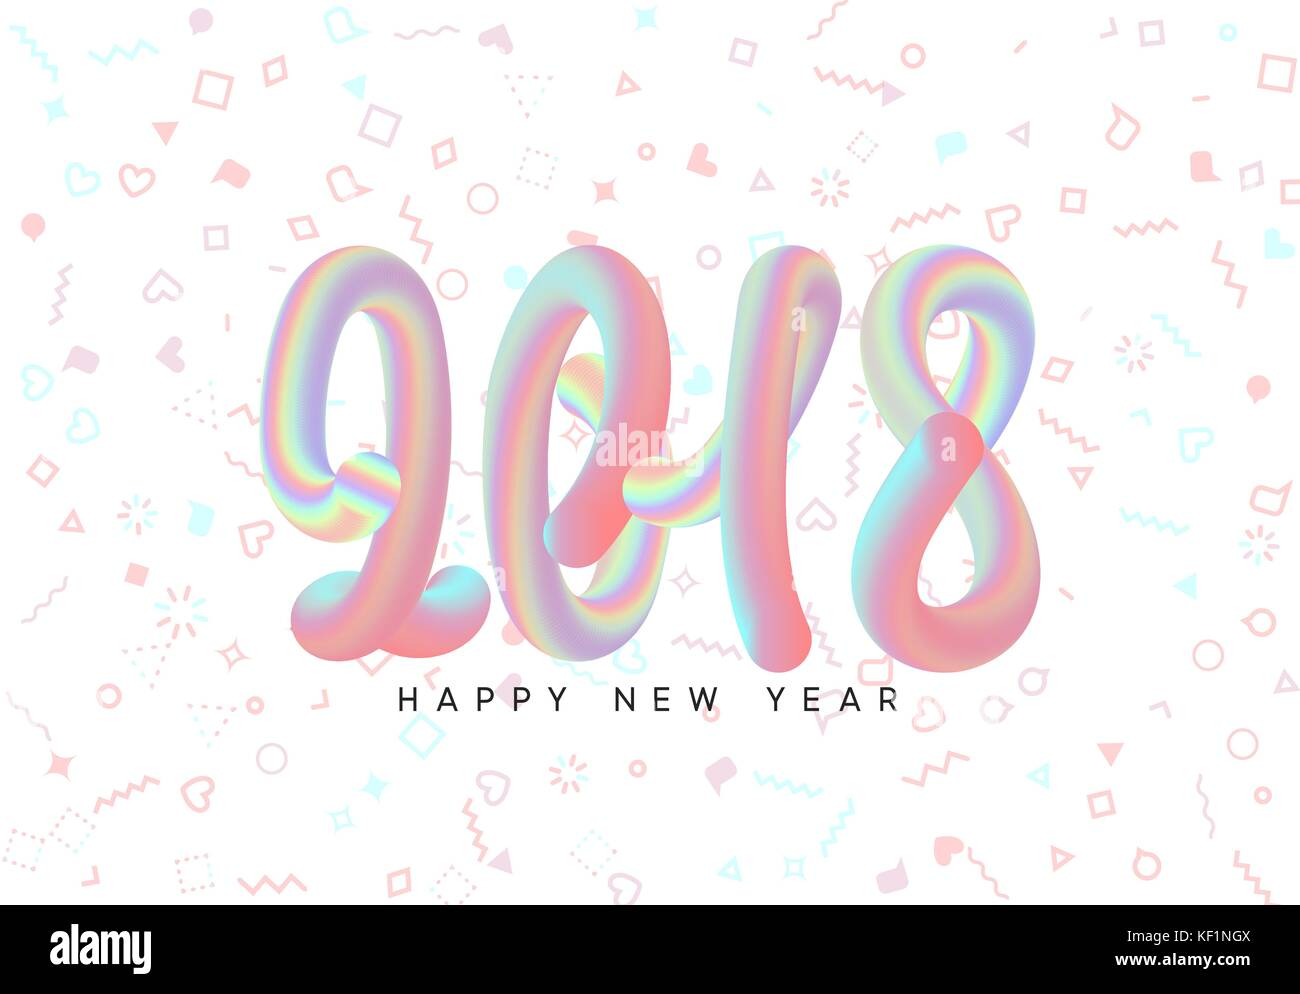 new year 2018 abstract liquid blend design hipster background with geometric colored pattern